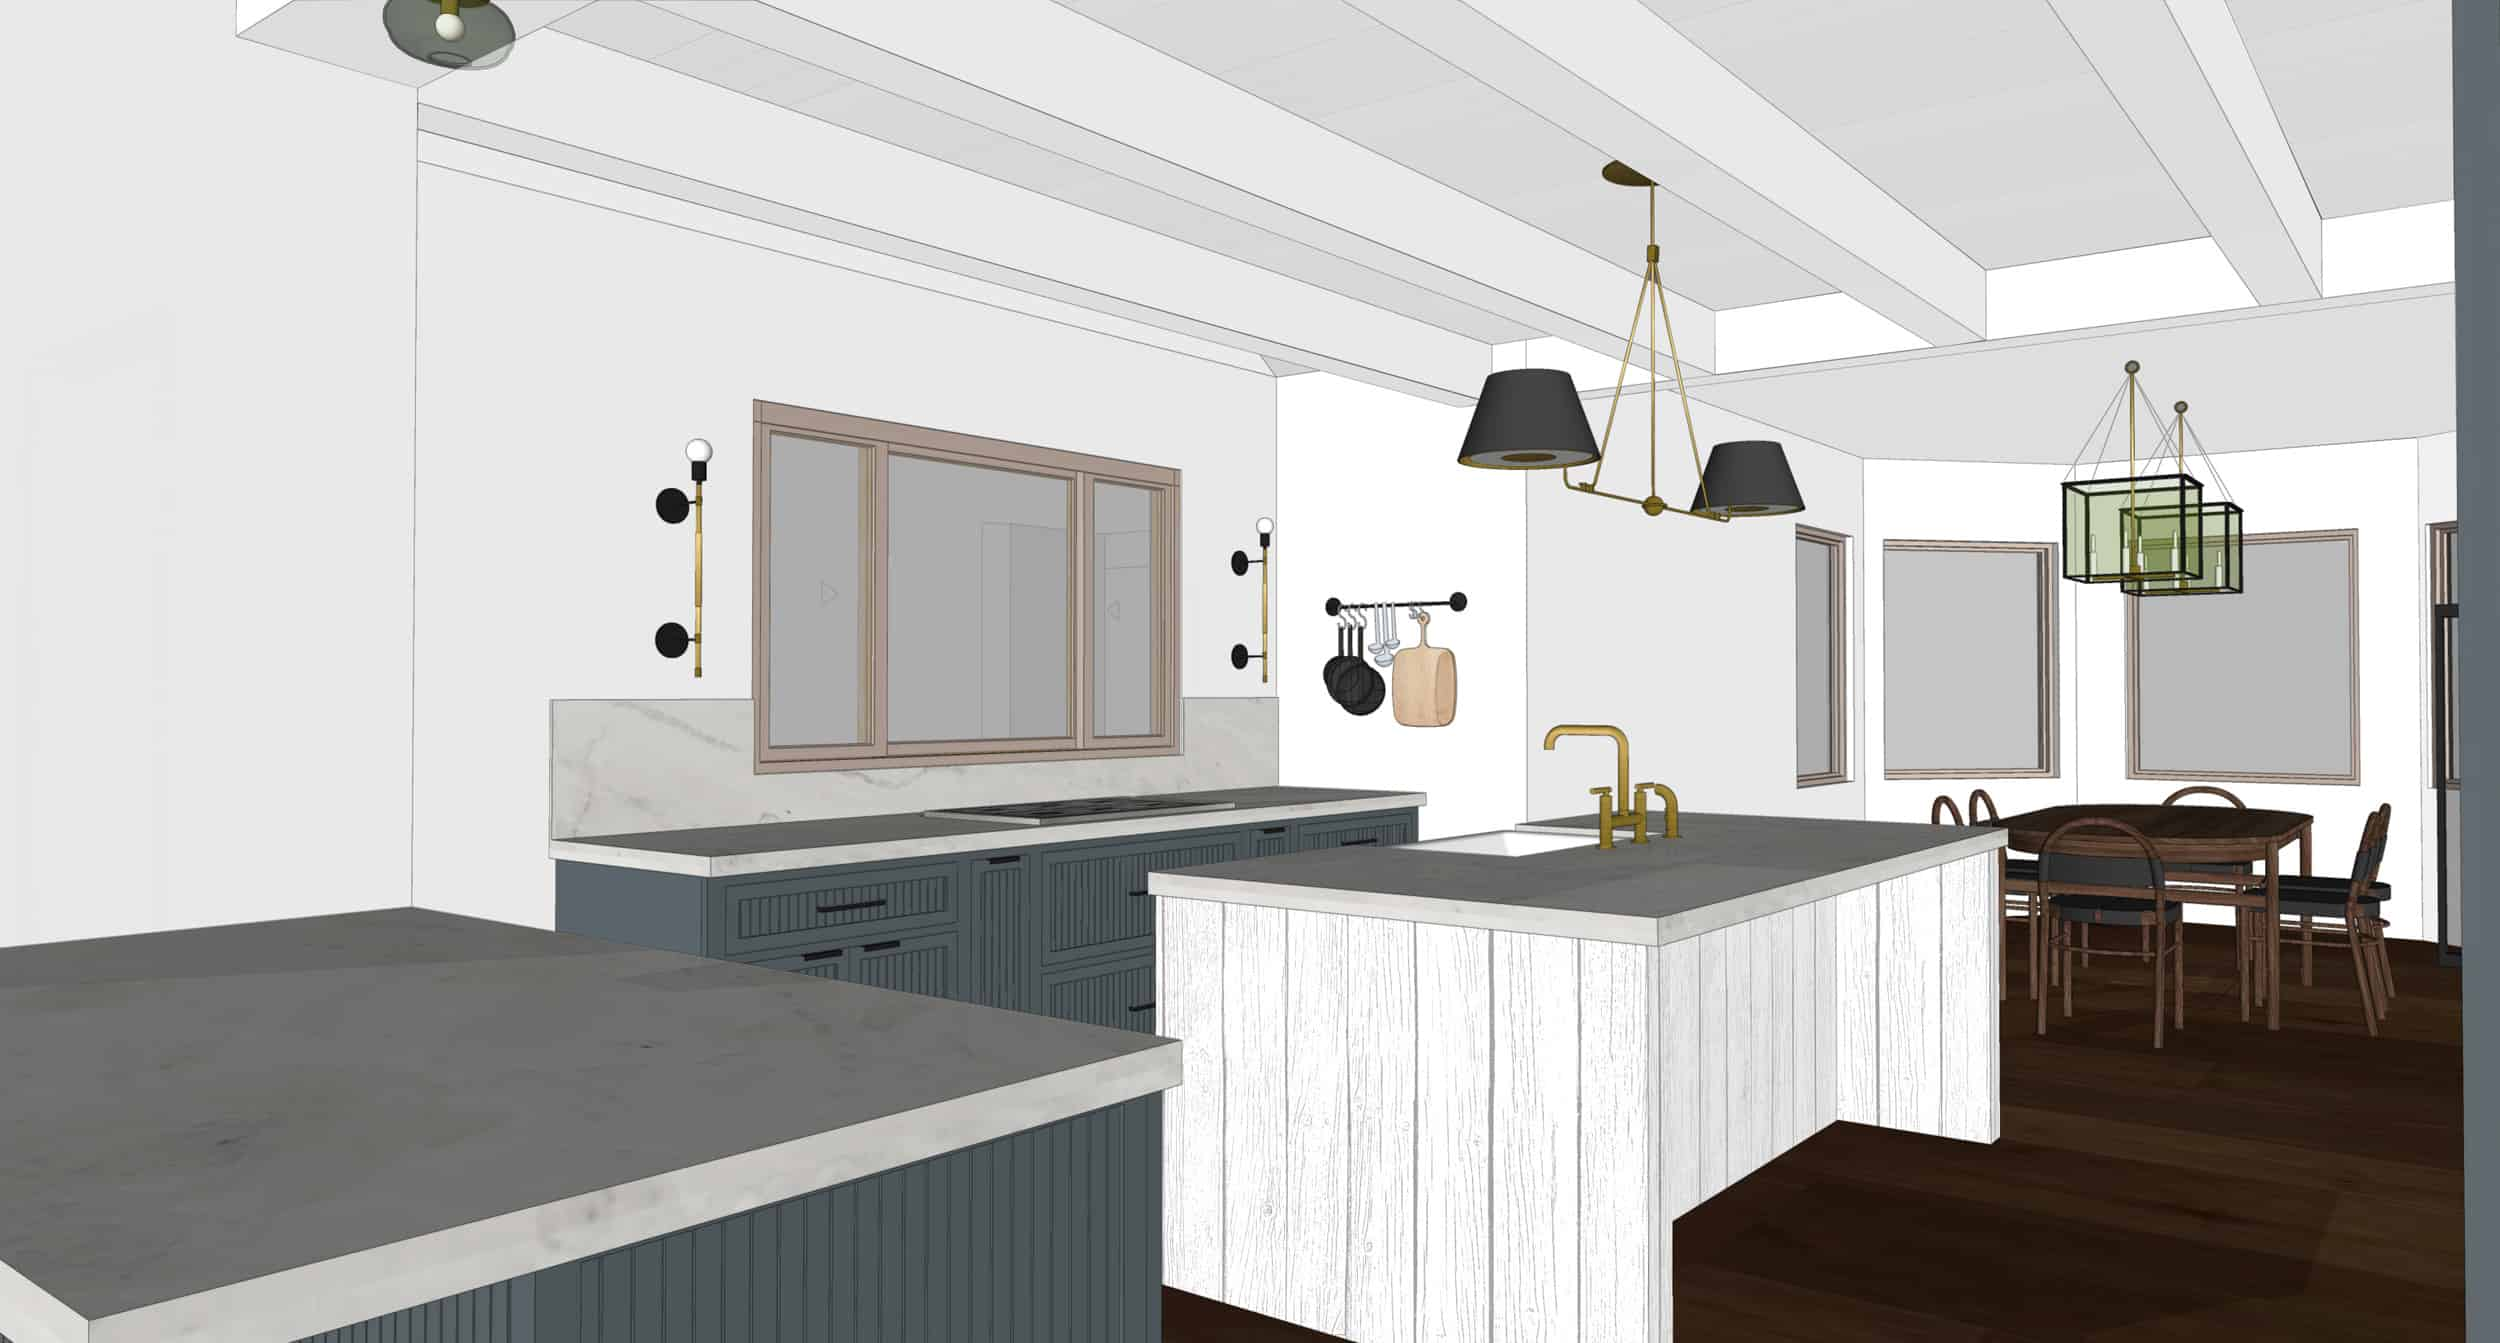 Emily Henderson Mountain Fixer Upper I Design You Decide Kitchen Render 03 6.20.181